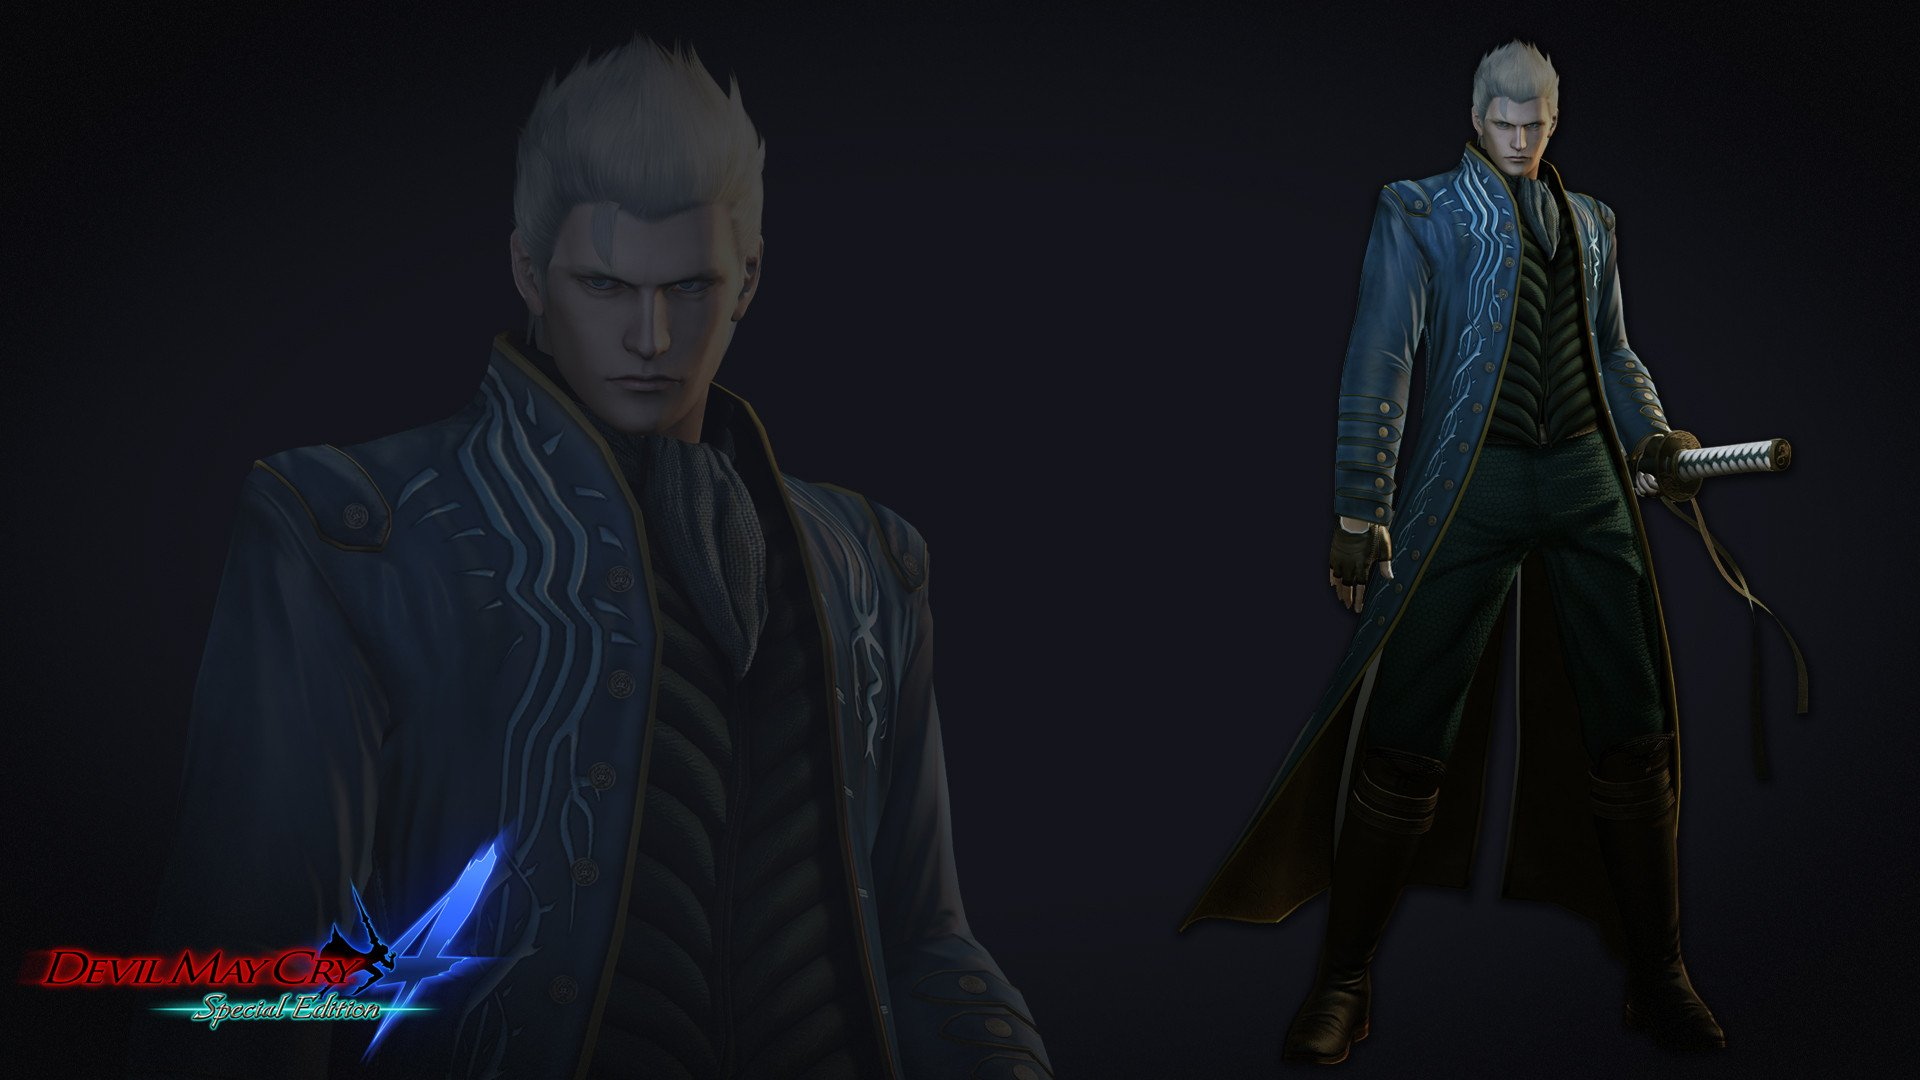 Devil May Cry 4 Hd Wallpaper Background Image 1920x1080